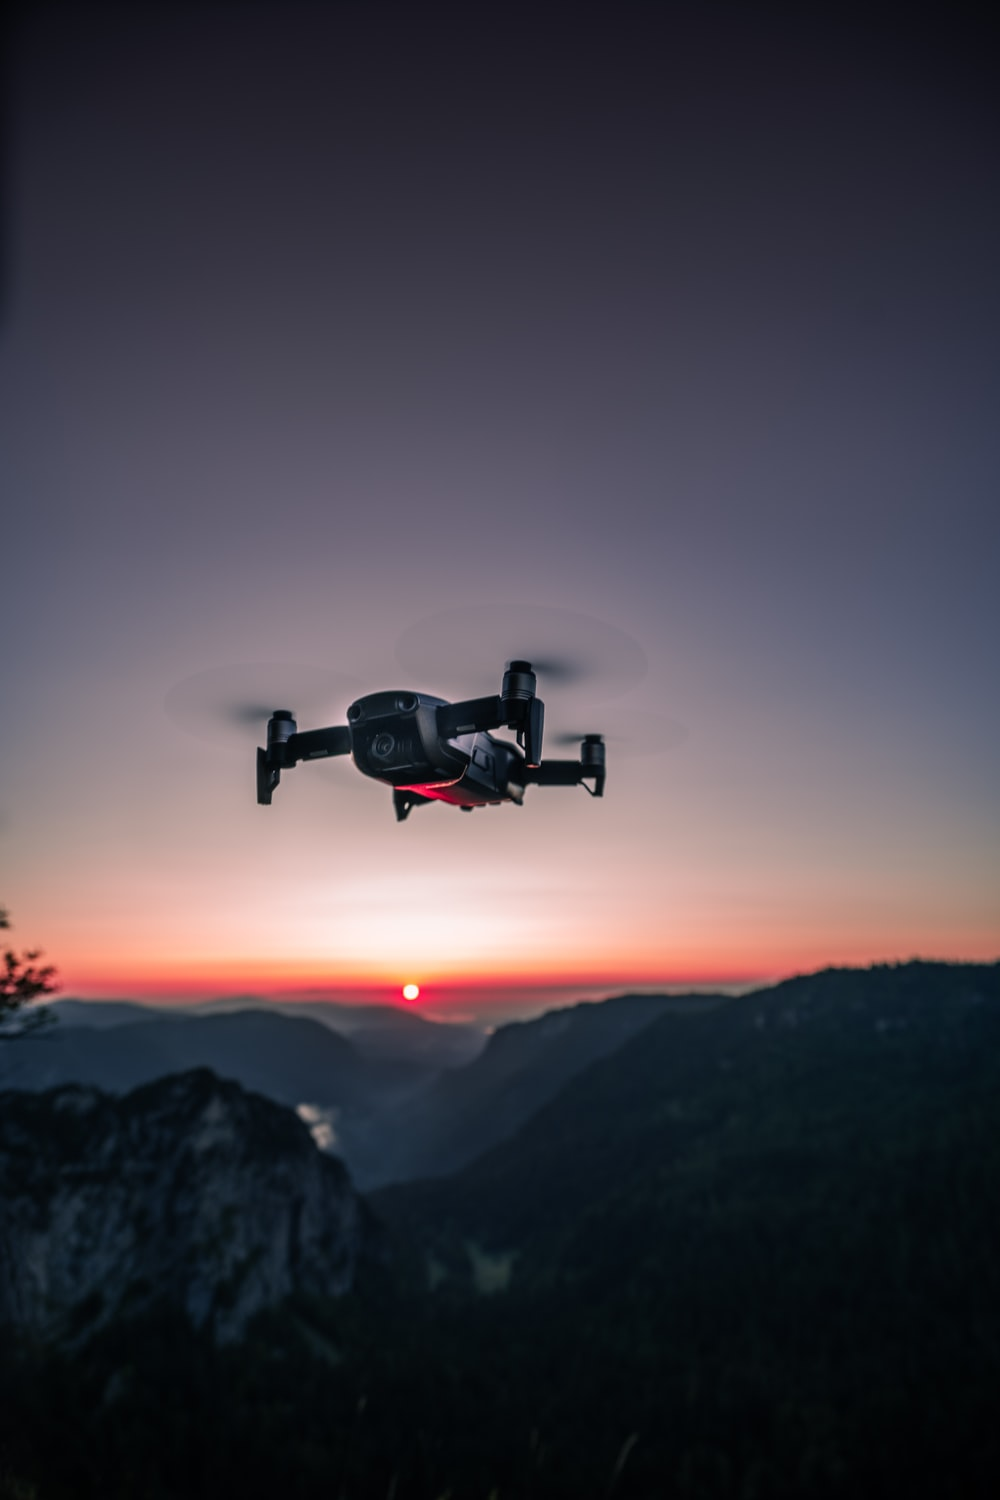 view photography of black quadcopter drone on air during dawn